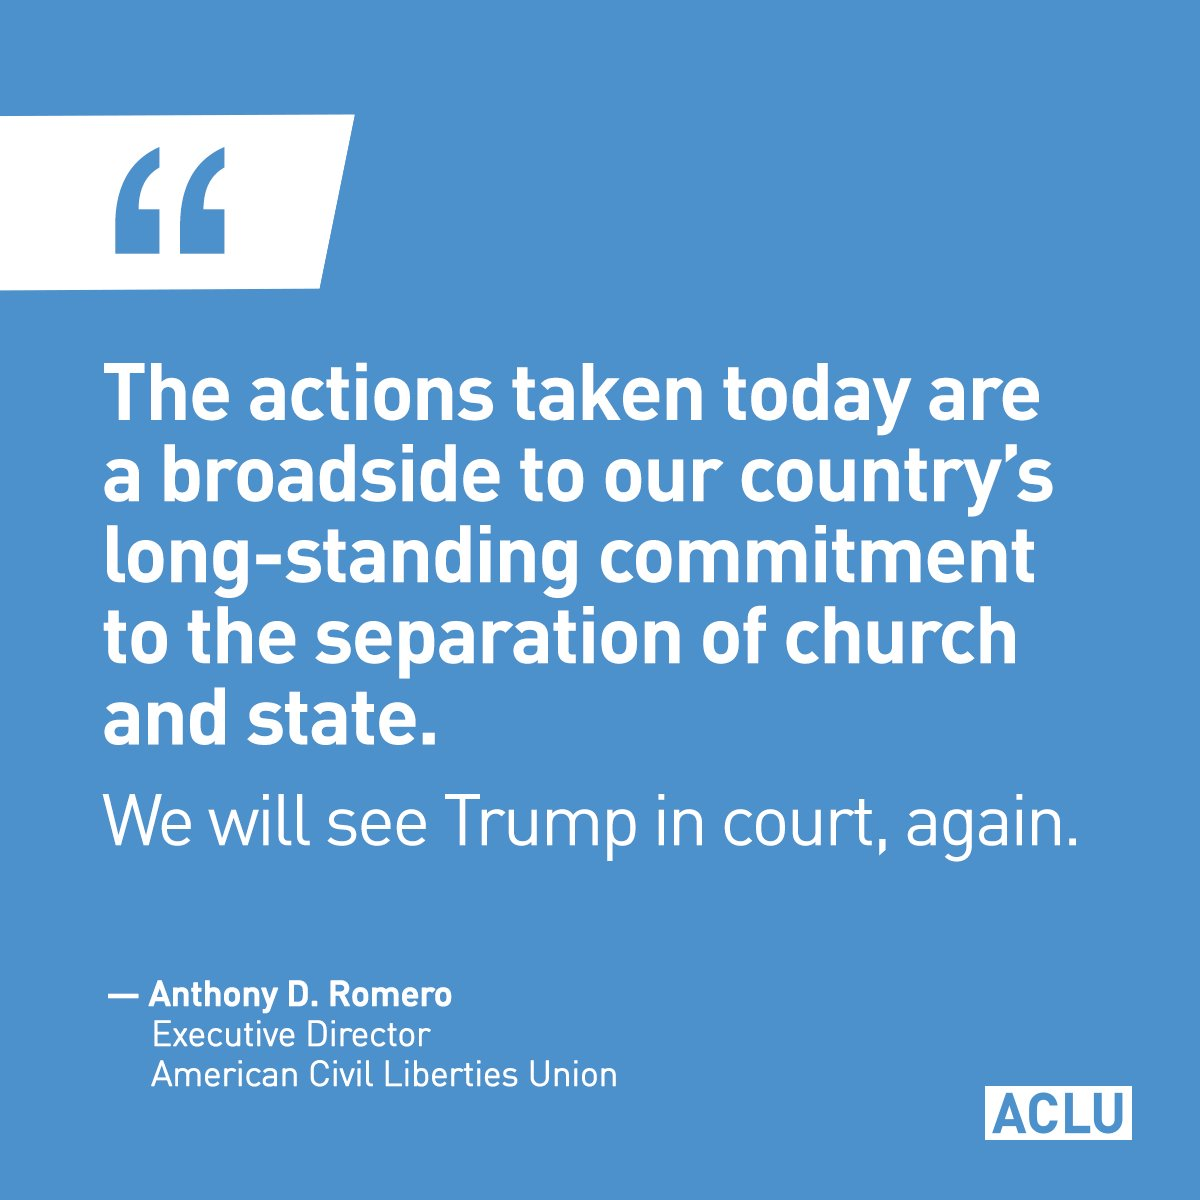 Our freedom of religion is not a #LicenseToDiscriminate.   @POTUS, we will see you in court, again.